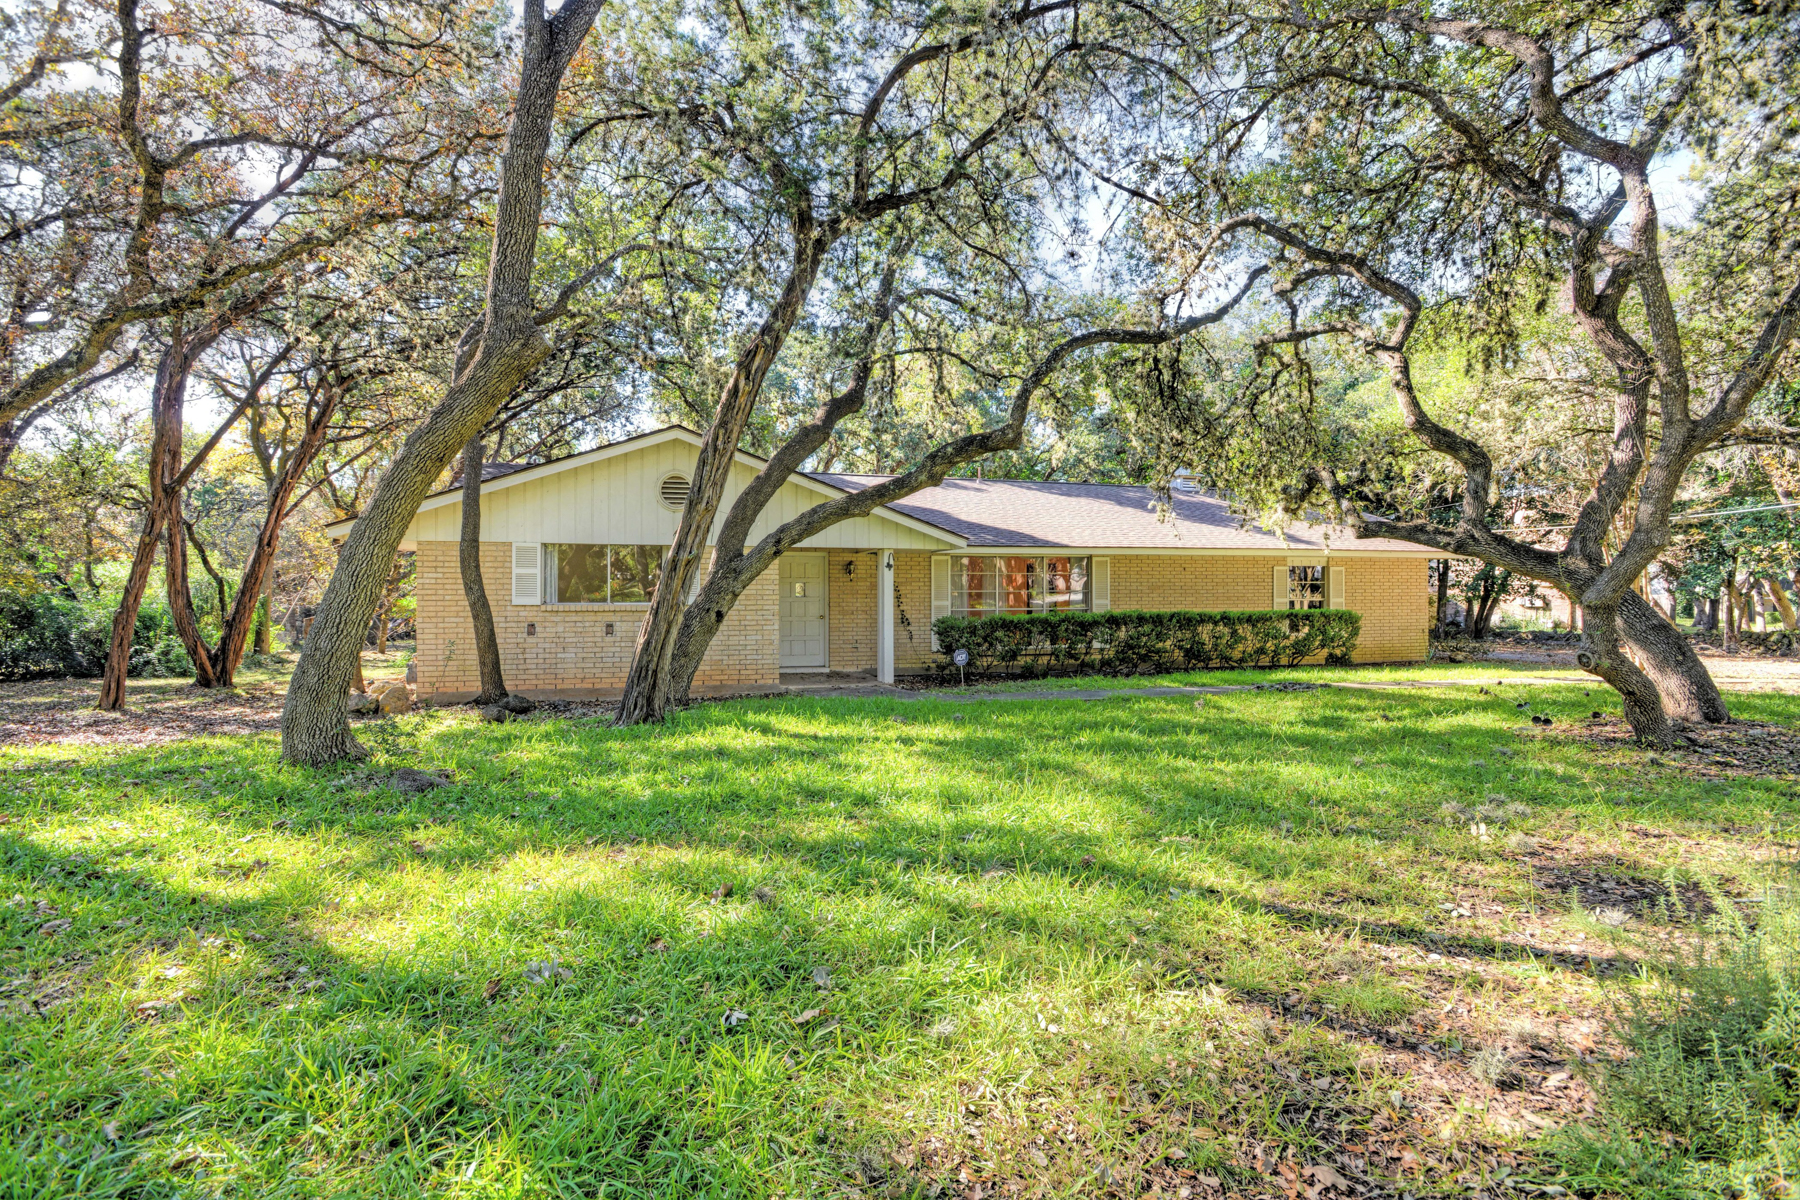 Single Family Home for Sale at Stunning Single-Story Property in Shavano Park 118 Elm Spring Ln Shavano Park, Texas 78231 United States